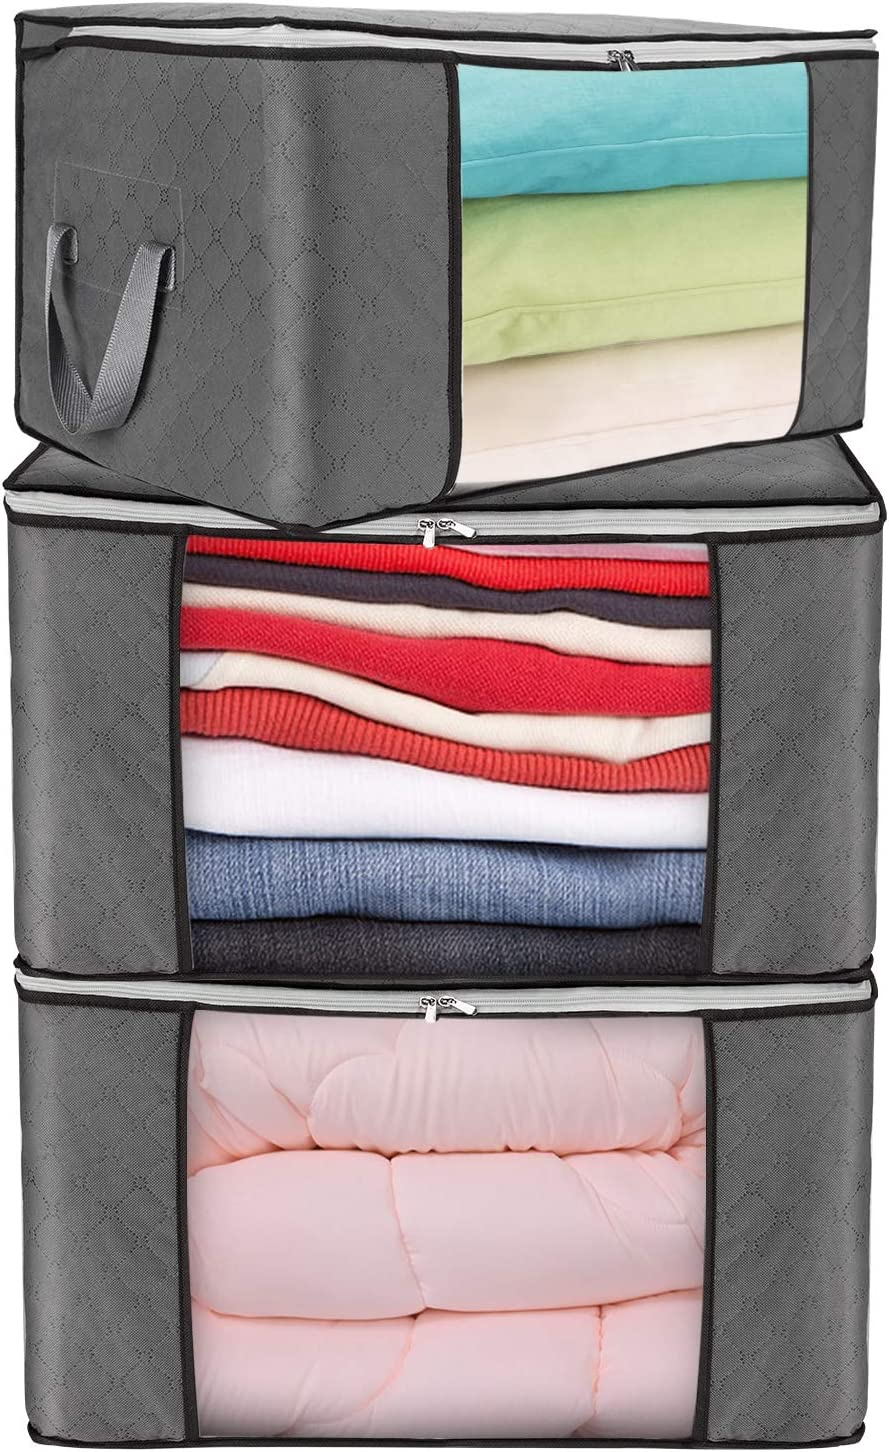 JINHODY Large Clothes Storage Bag Containers, 3 Pack Foldable Linen Storage Bags Organizer For King Comforter Blanket Bedding Pillow Quilt With Durable Zipper, Handle, Clear Window, Thick Fabric, Grey